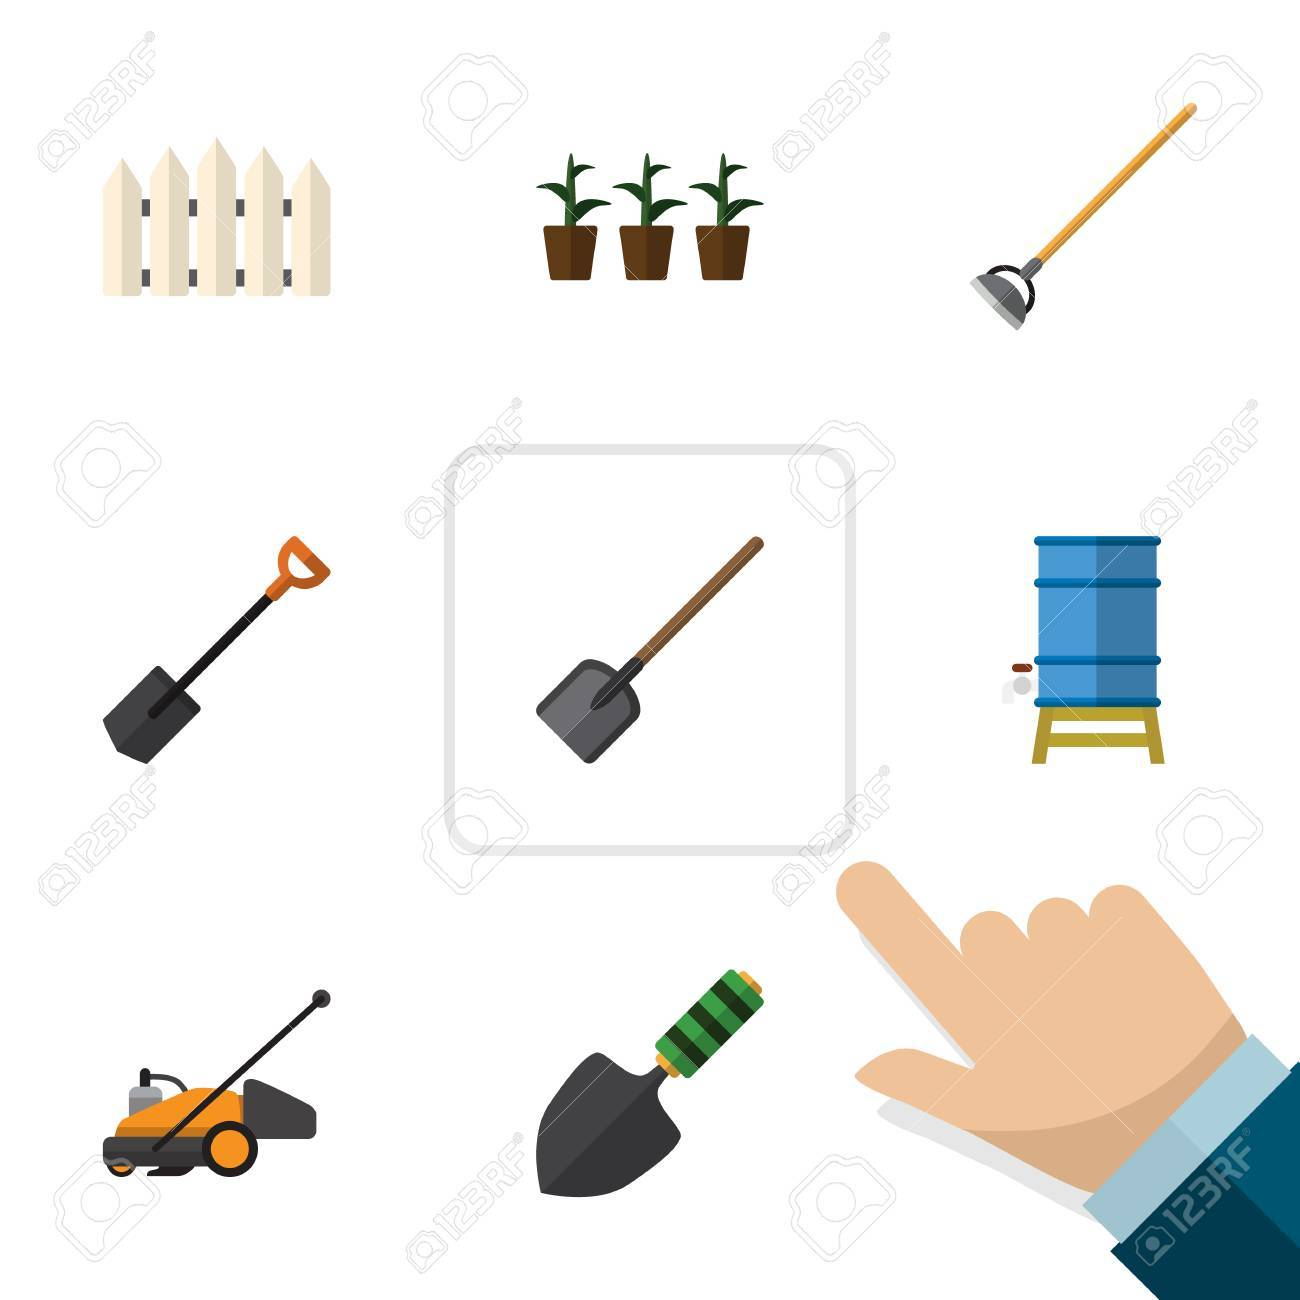 Set Of Planting Tools Icon Royalty Free Cliparts Vectors And